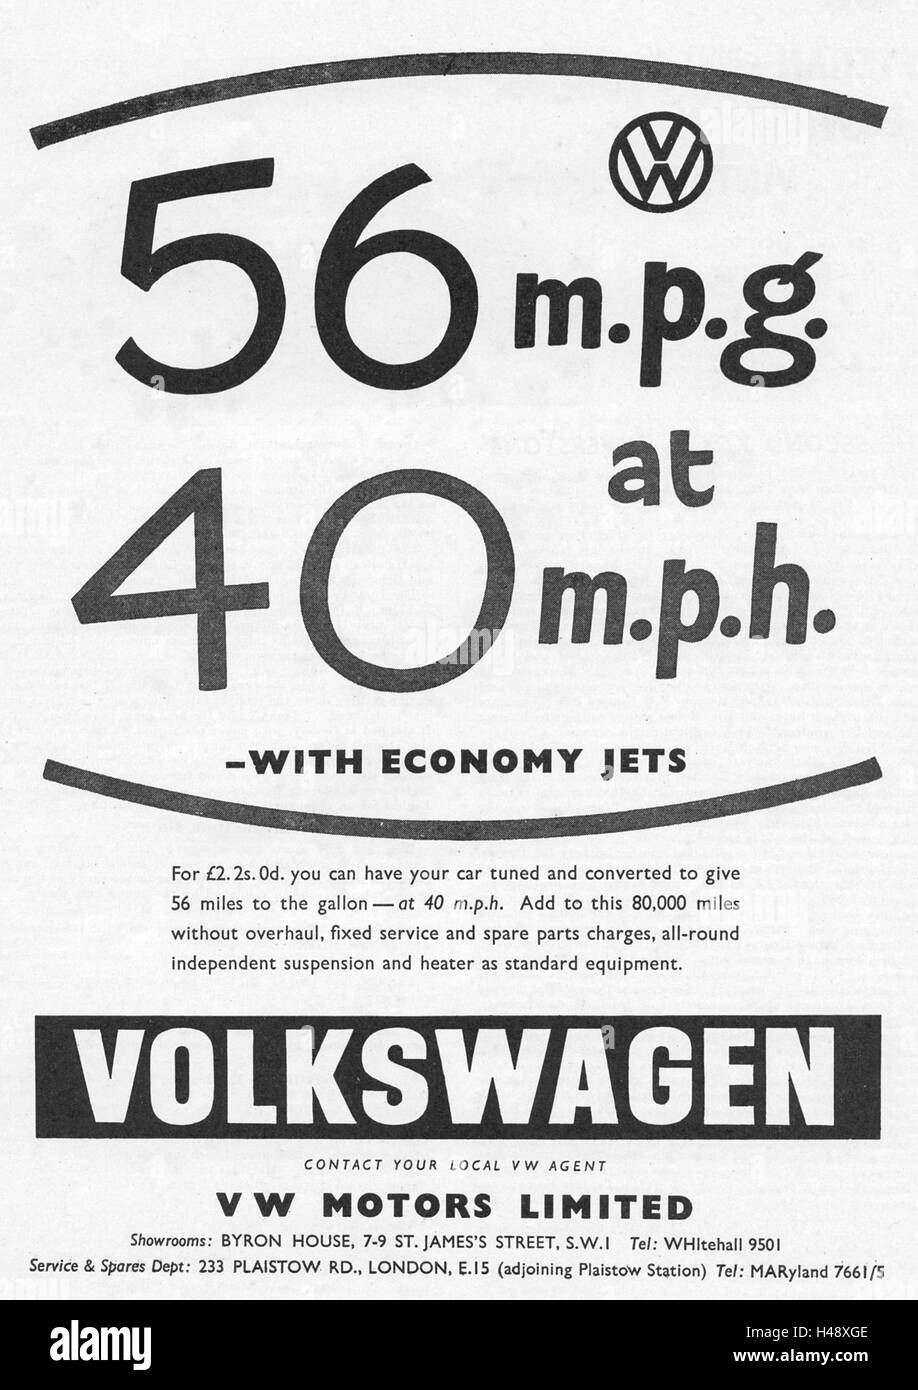 Advert for Volkswagen cars from a Motor Sport magazine in 1957. - Stock Image